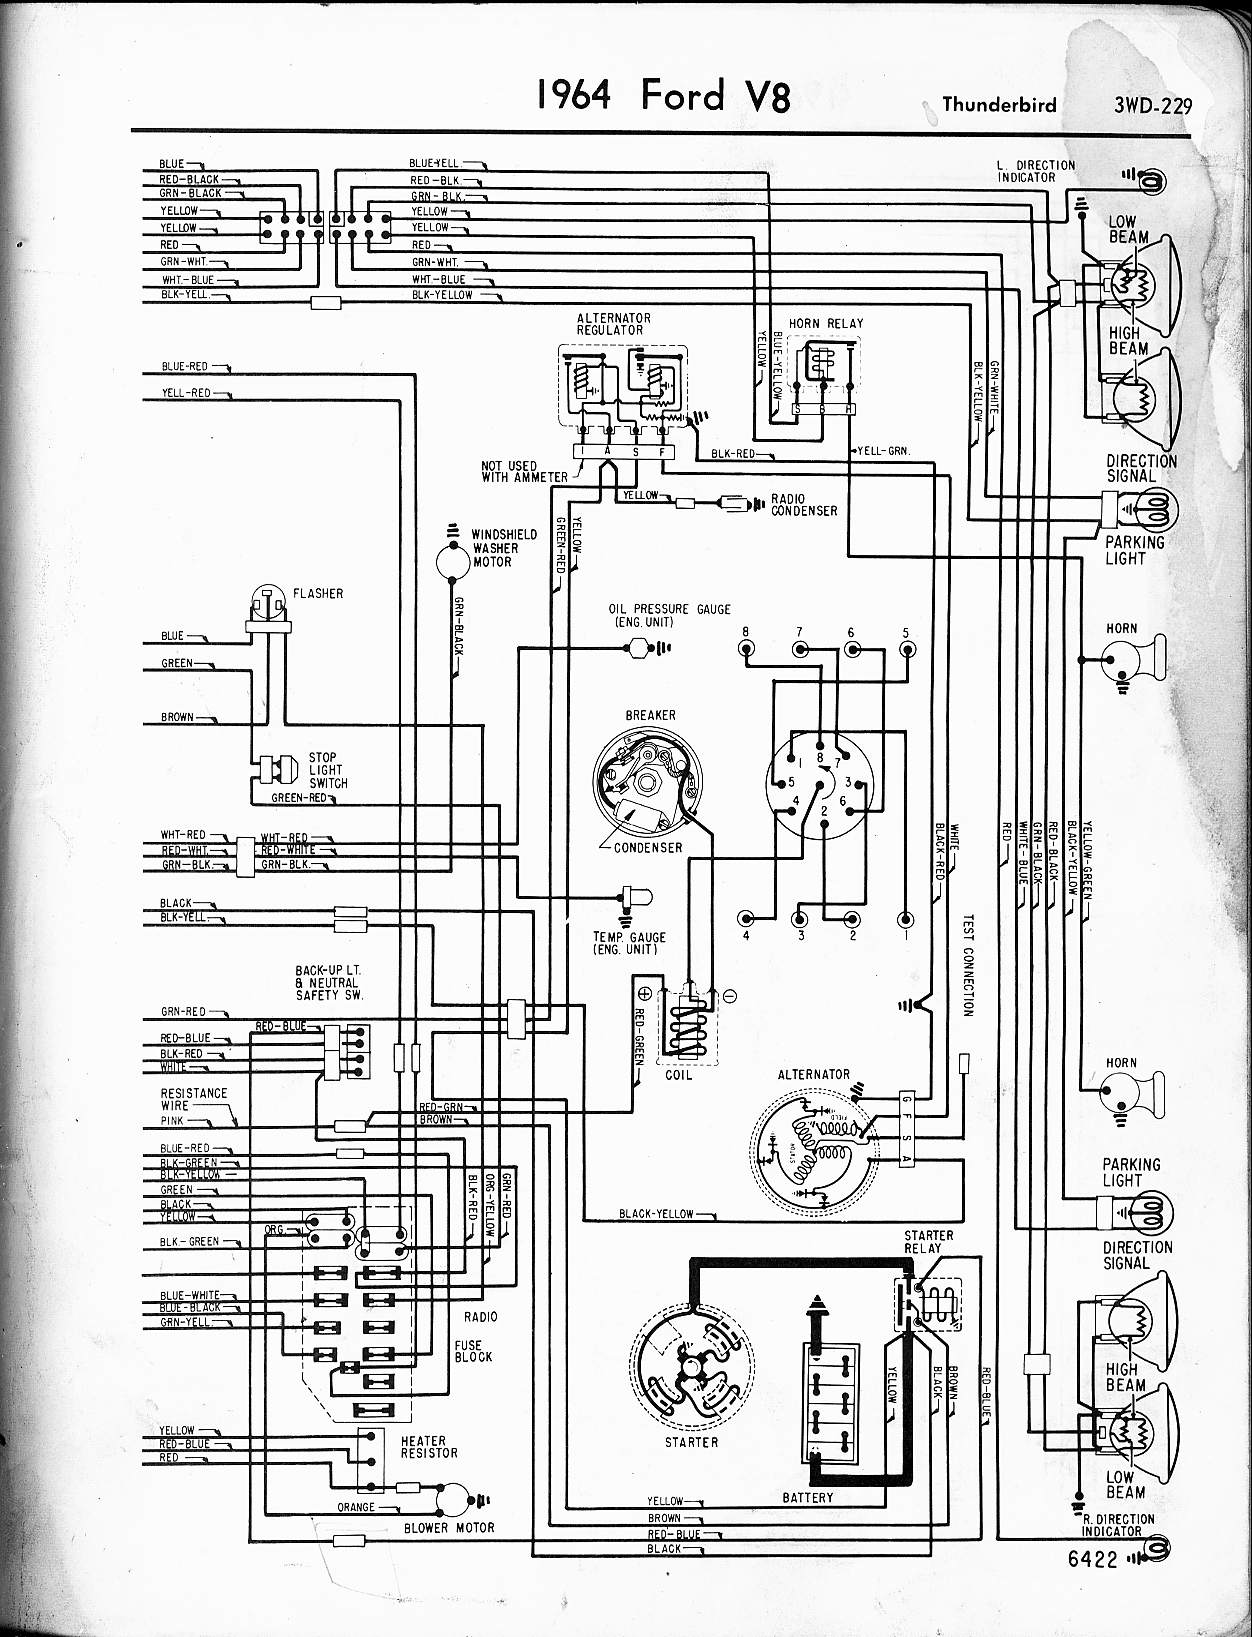 1964 Mustang Fuse Box Diagram Wiring Library Dual Field Alternator And Electronic Voltage Regulator Ford Thunderbird